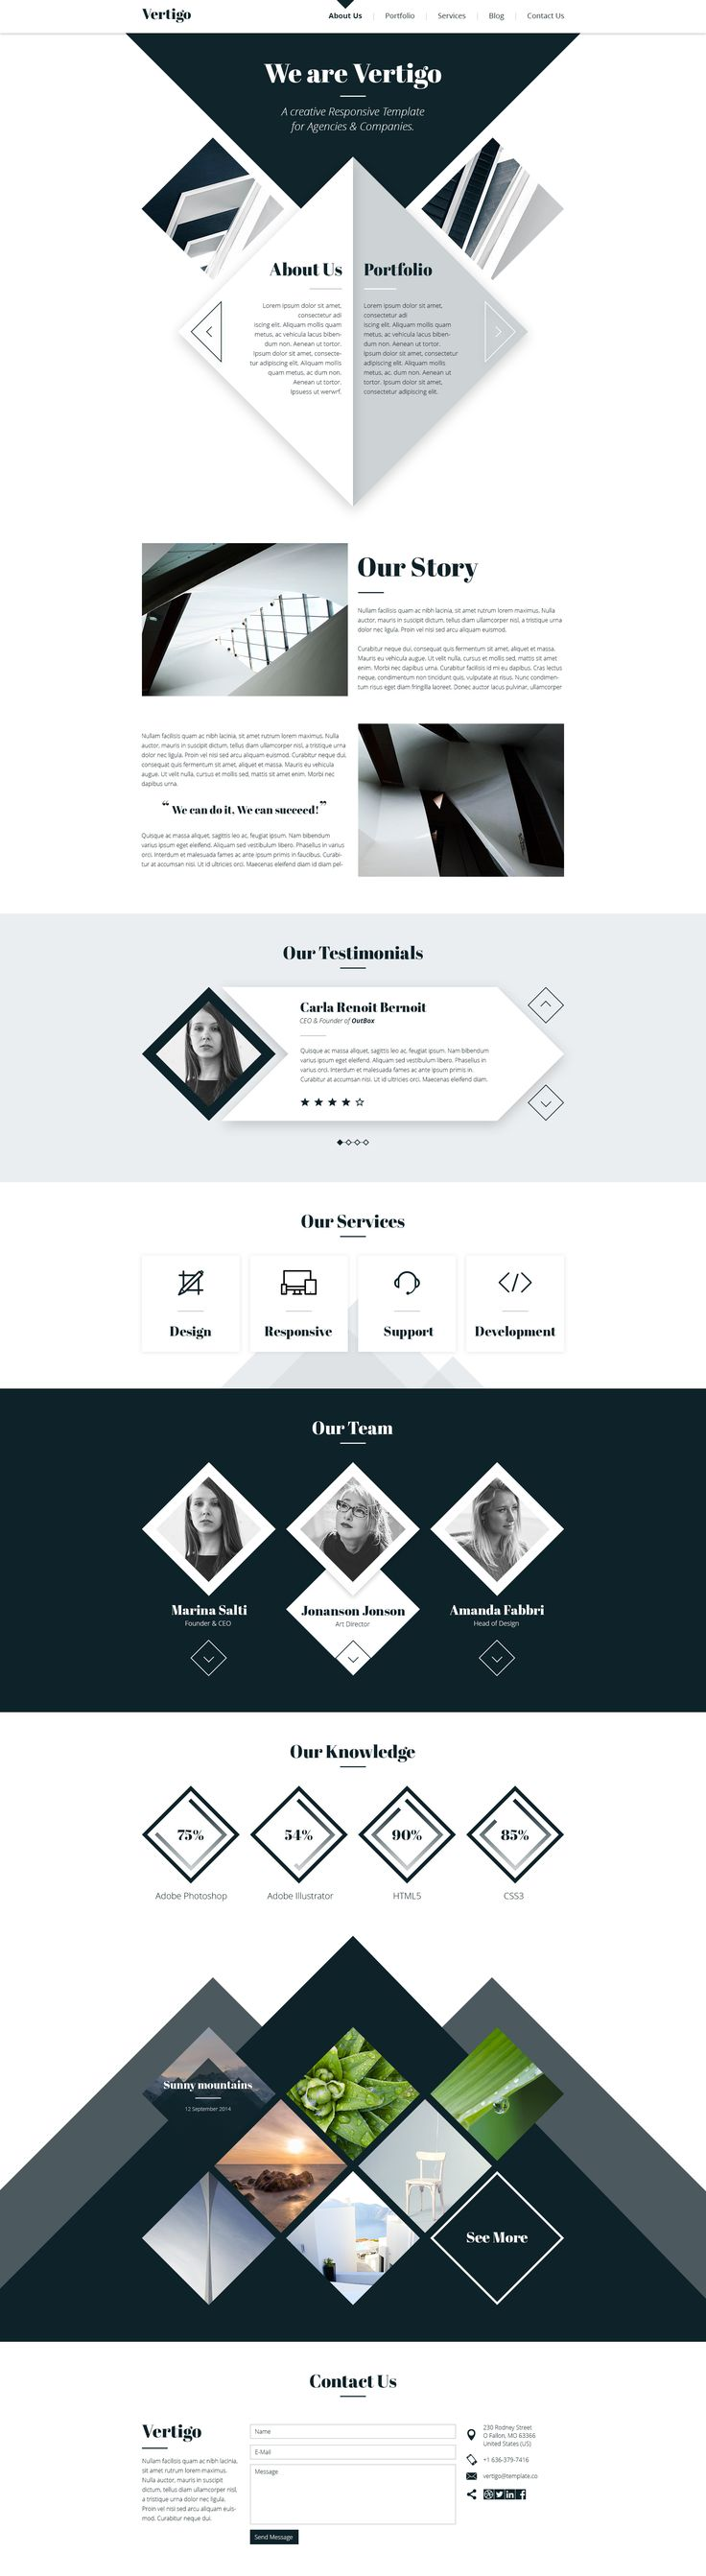 Best Business WordPress Themes - Love the unique geometric shapes here.